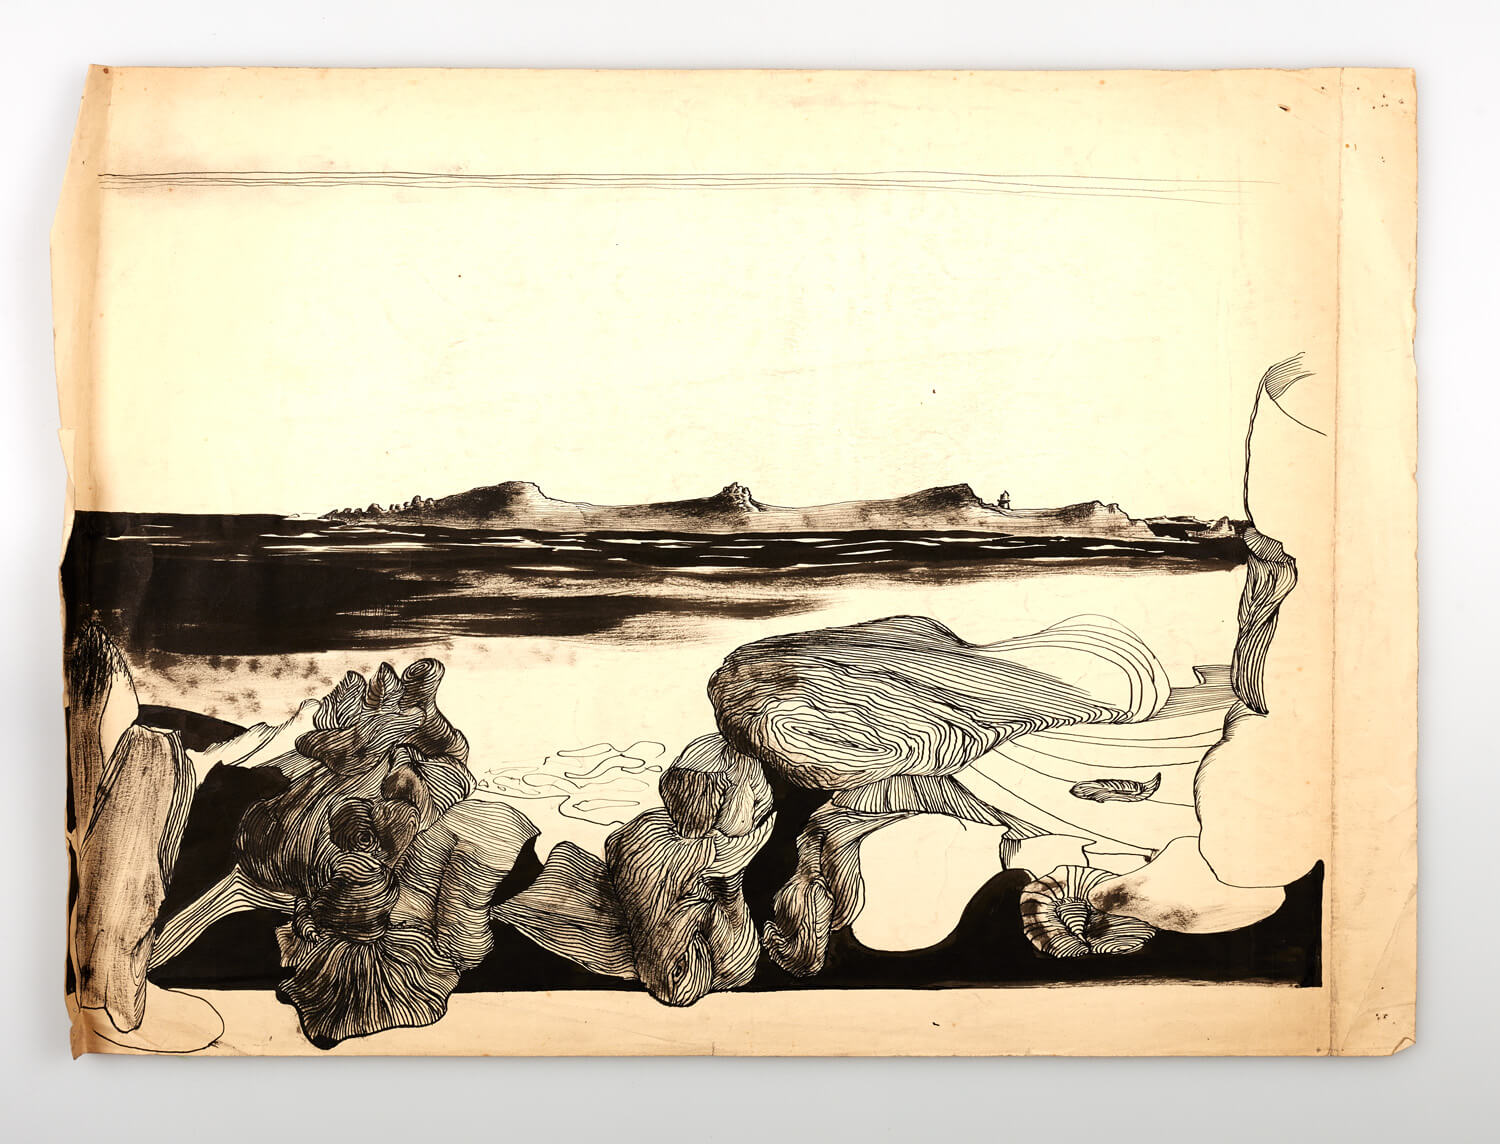 JB263 - Rocks and sea, Cornwall - 1946 - 34 x 53 cm - Pen and ink and wash